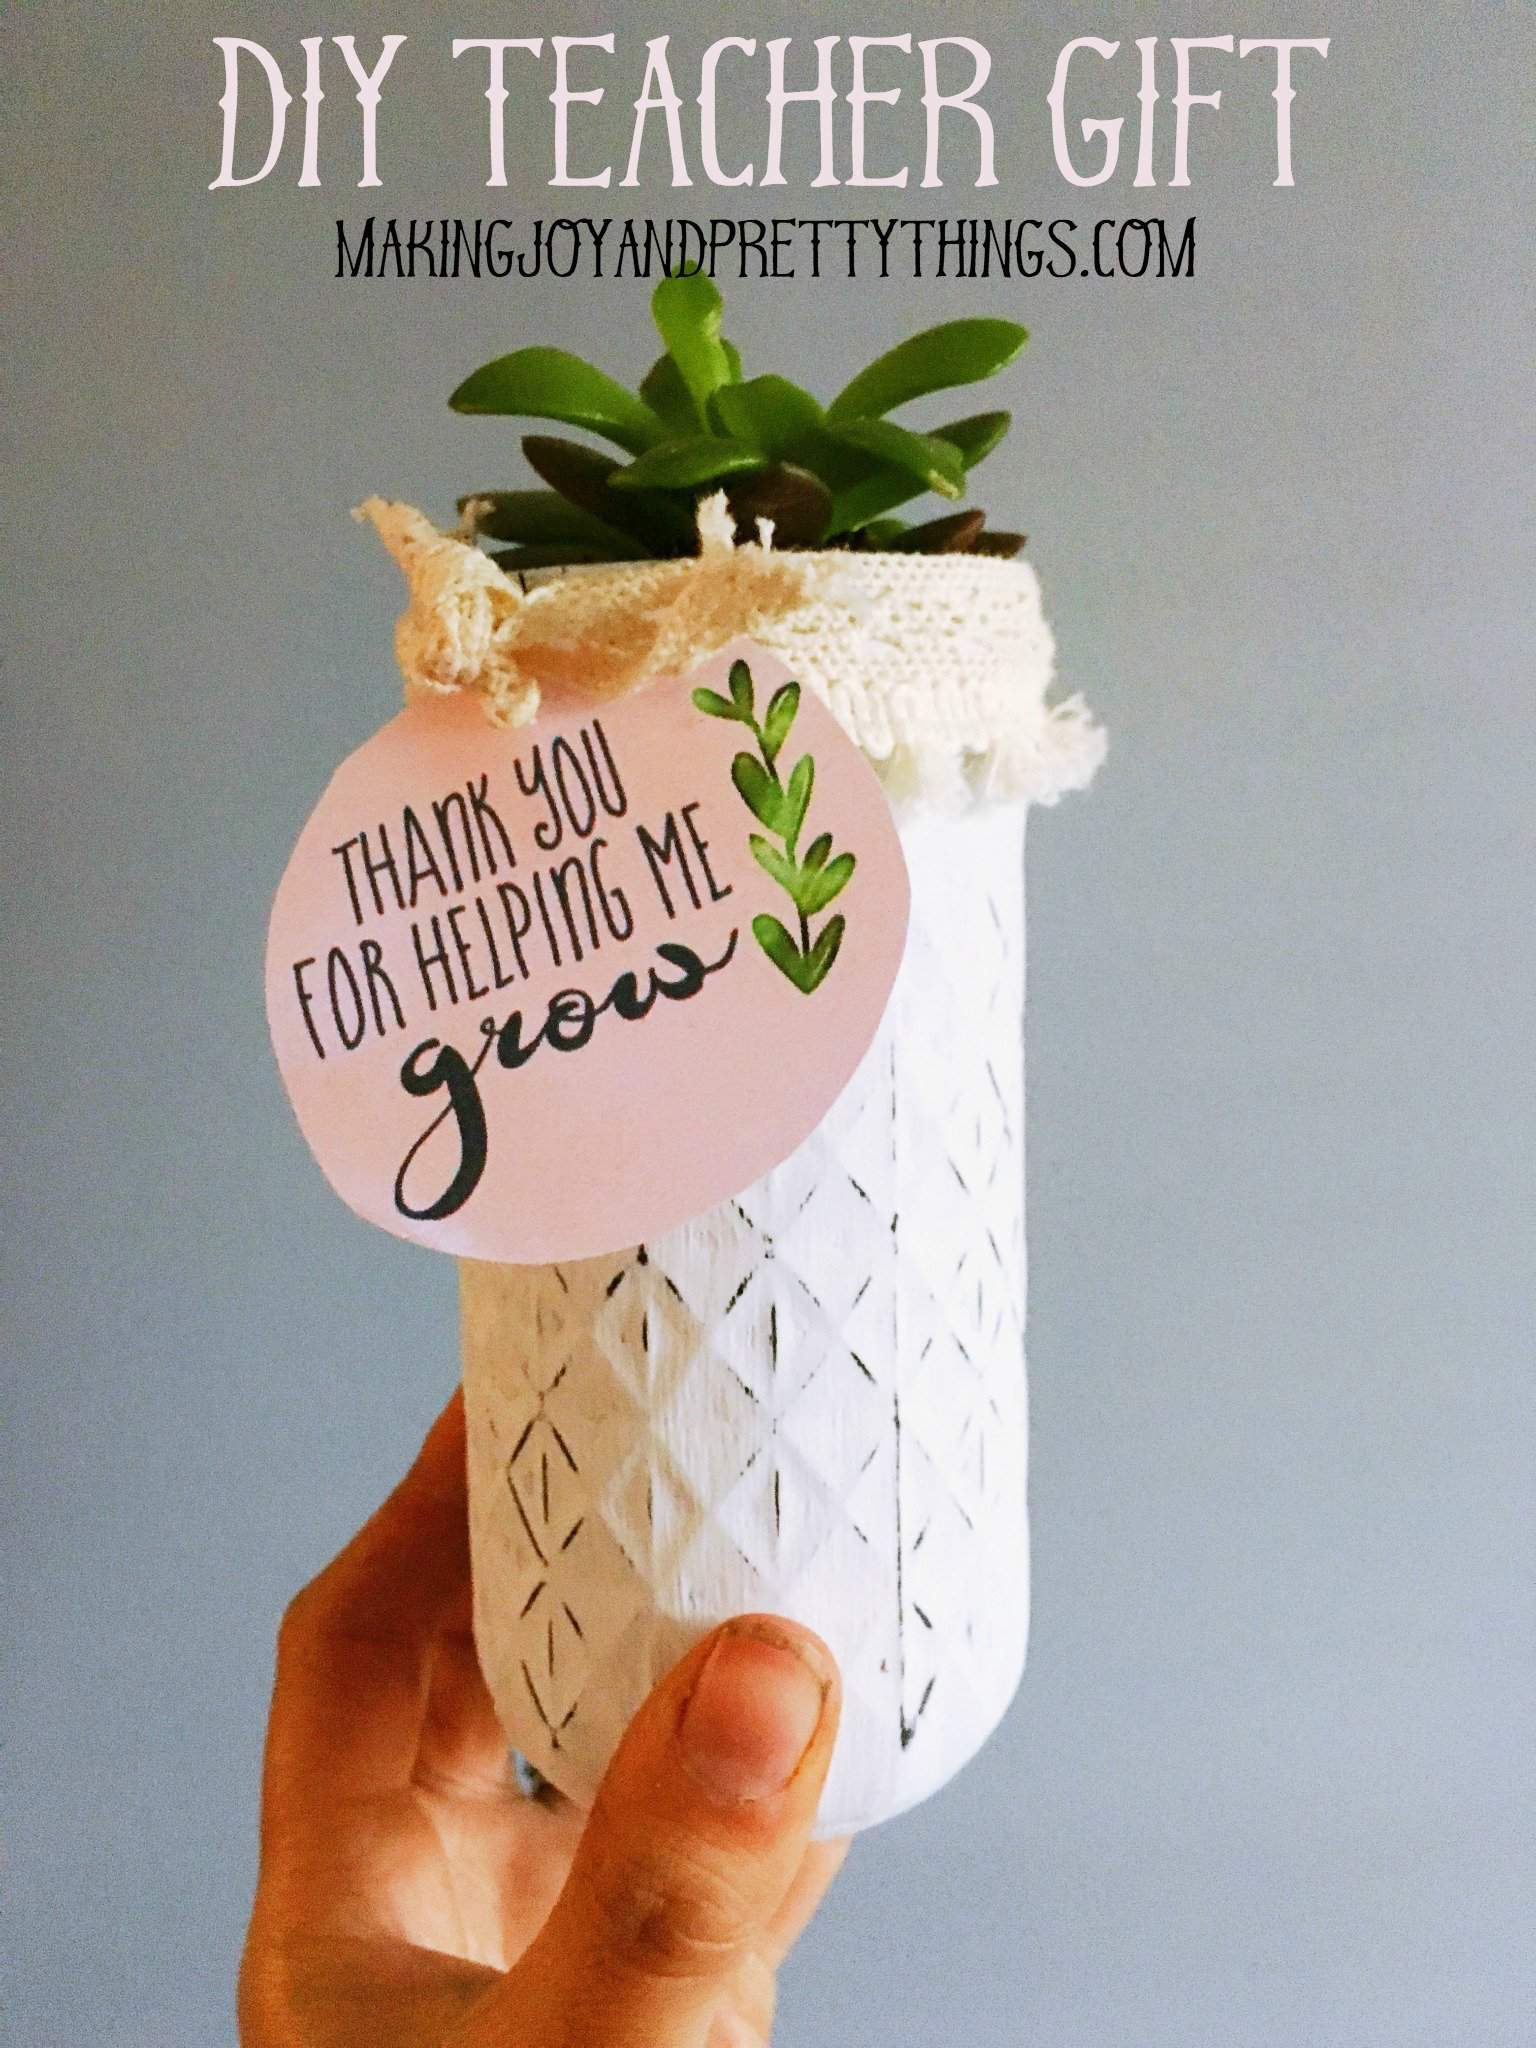 photo regarding Thank You for Helping Me Grow Free Printable named Do it yourself Trainer Appreciation Reward + Totally free Printable! -